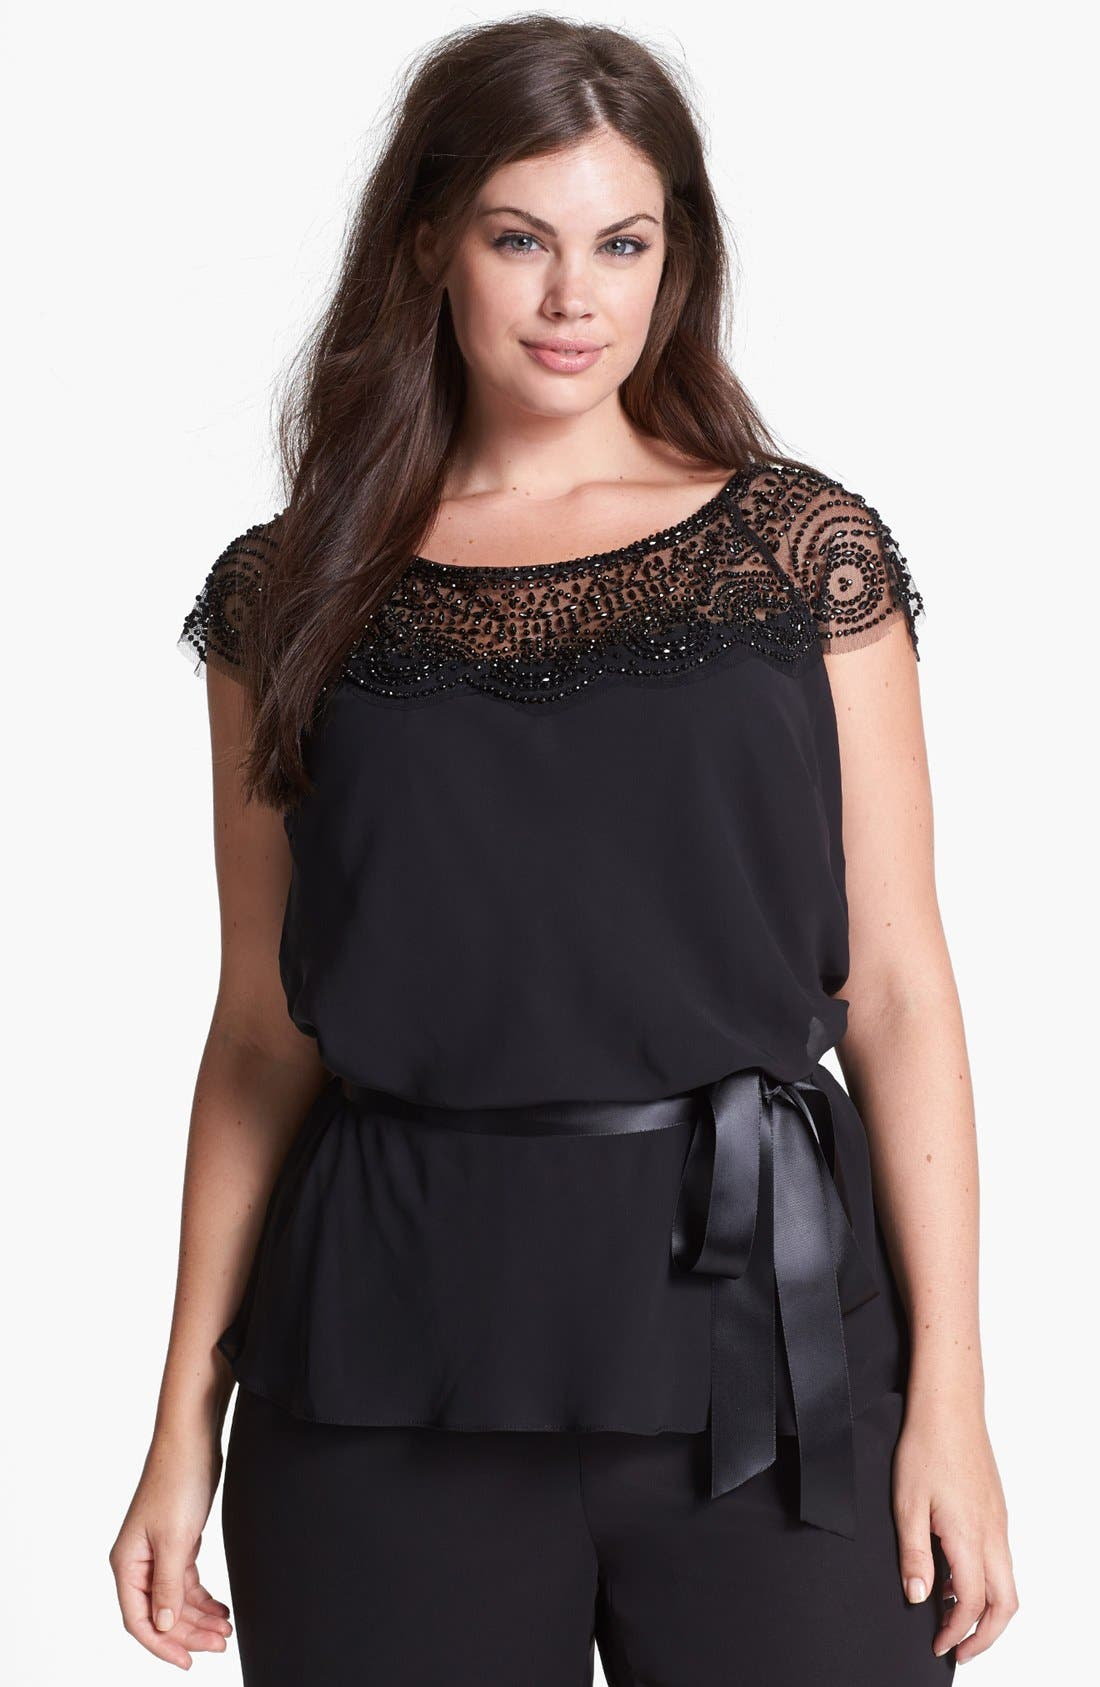 Alternate Image 1 Selected - Xscape Beaded Yoke Chiffon Top (Plus Size)